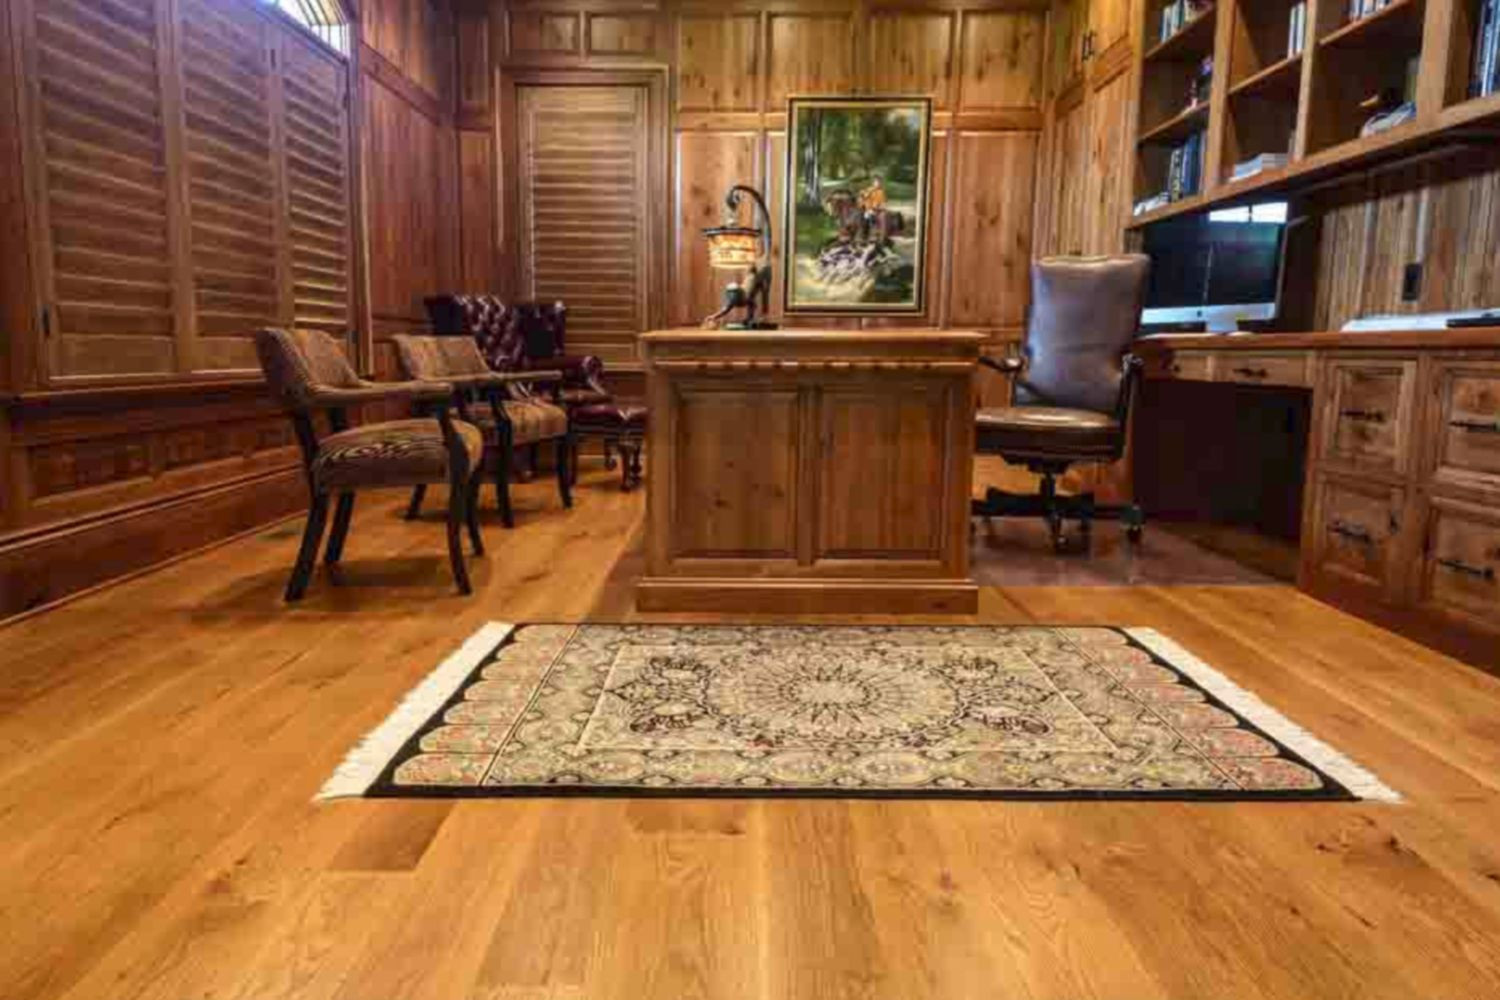 Cost Of Hardwood Flooring Per Square Foot Canada Of top 5 Brands for solid Hardwood Flooring within the Woods Company White Oak 1500 X 1000 56a49f6d5f9b58b7d0d7e1db